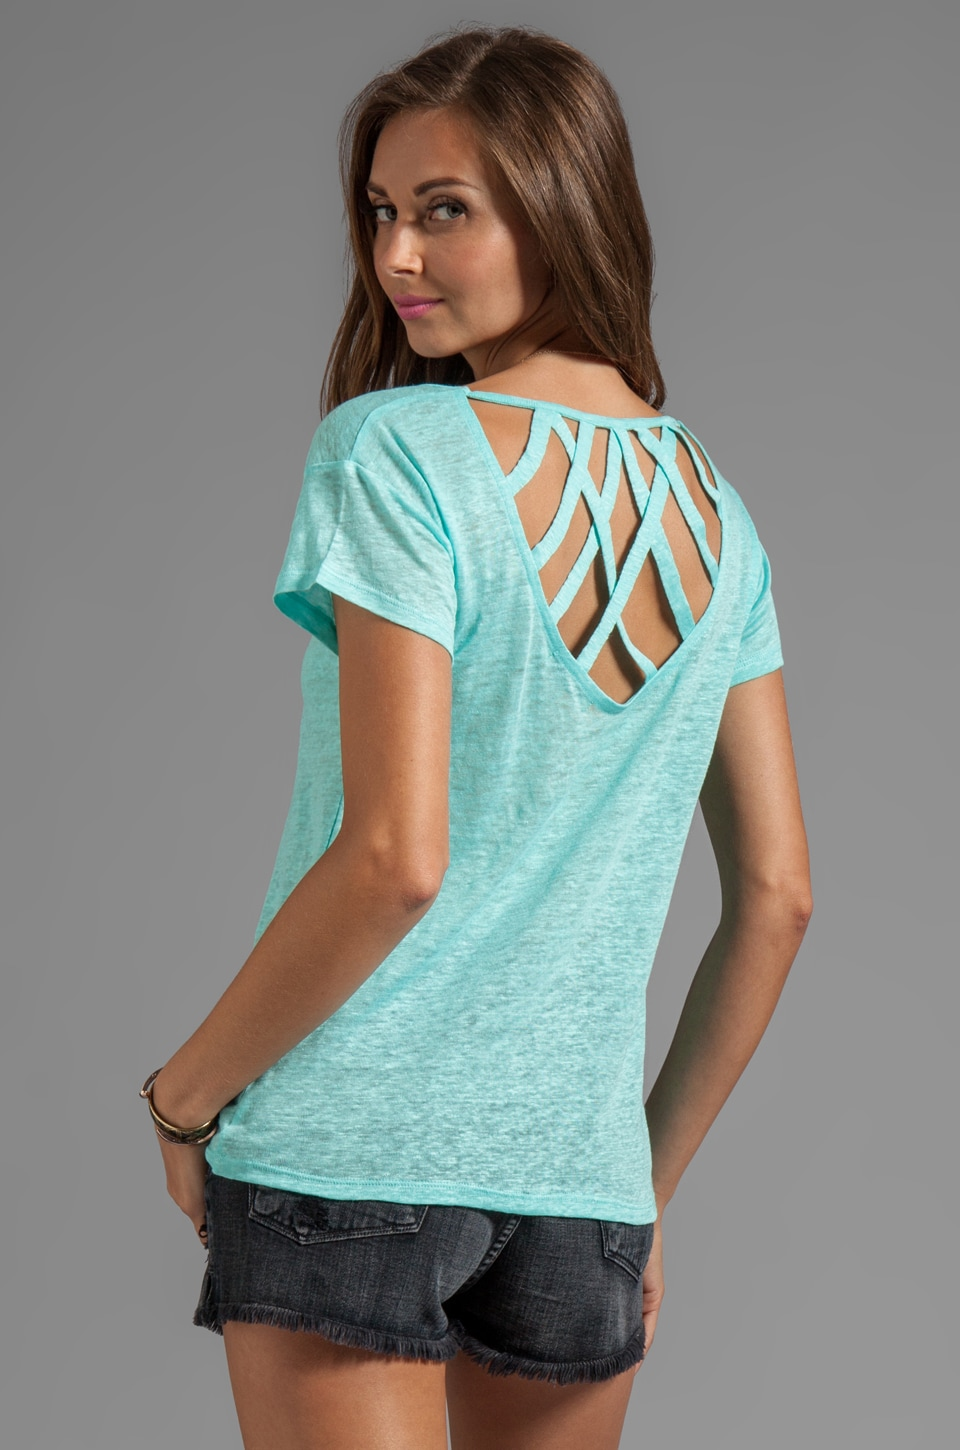 TOWNSEN Campbell Top in Aqua